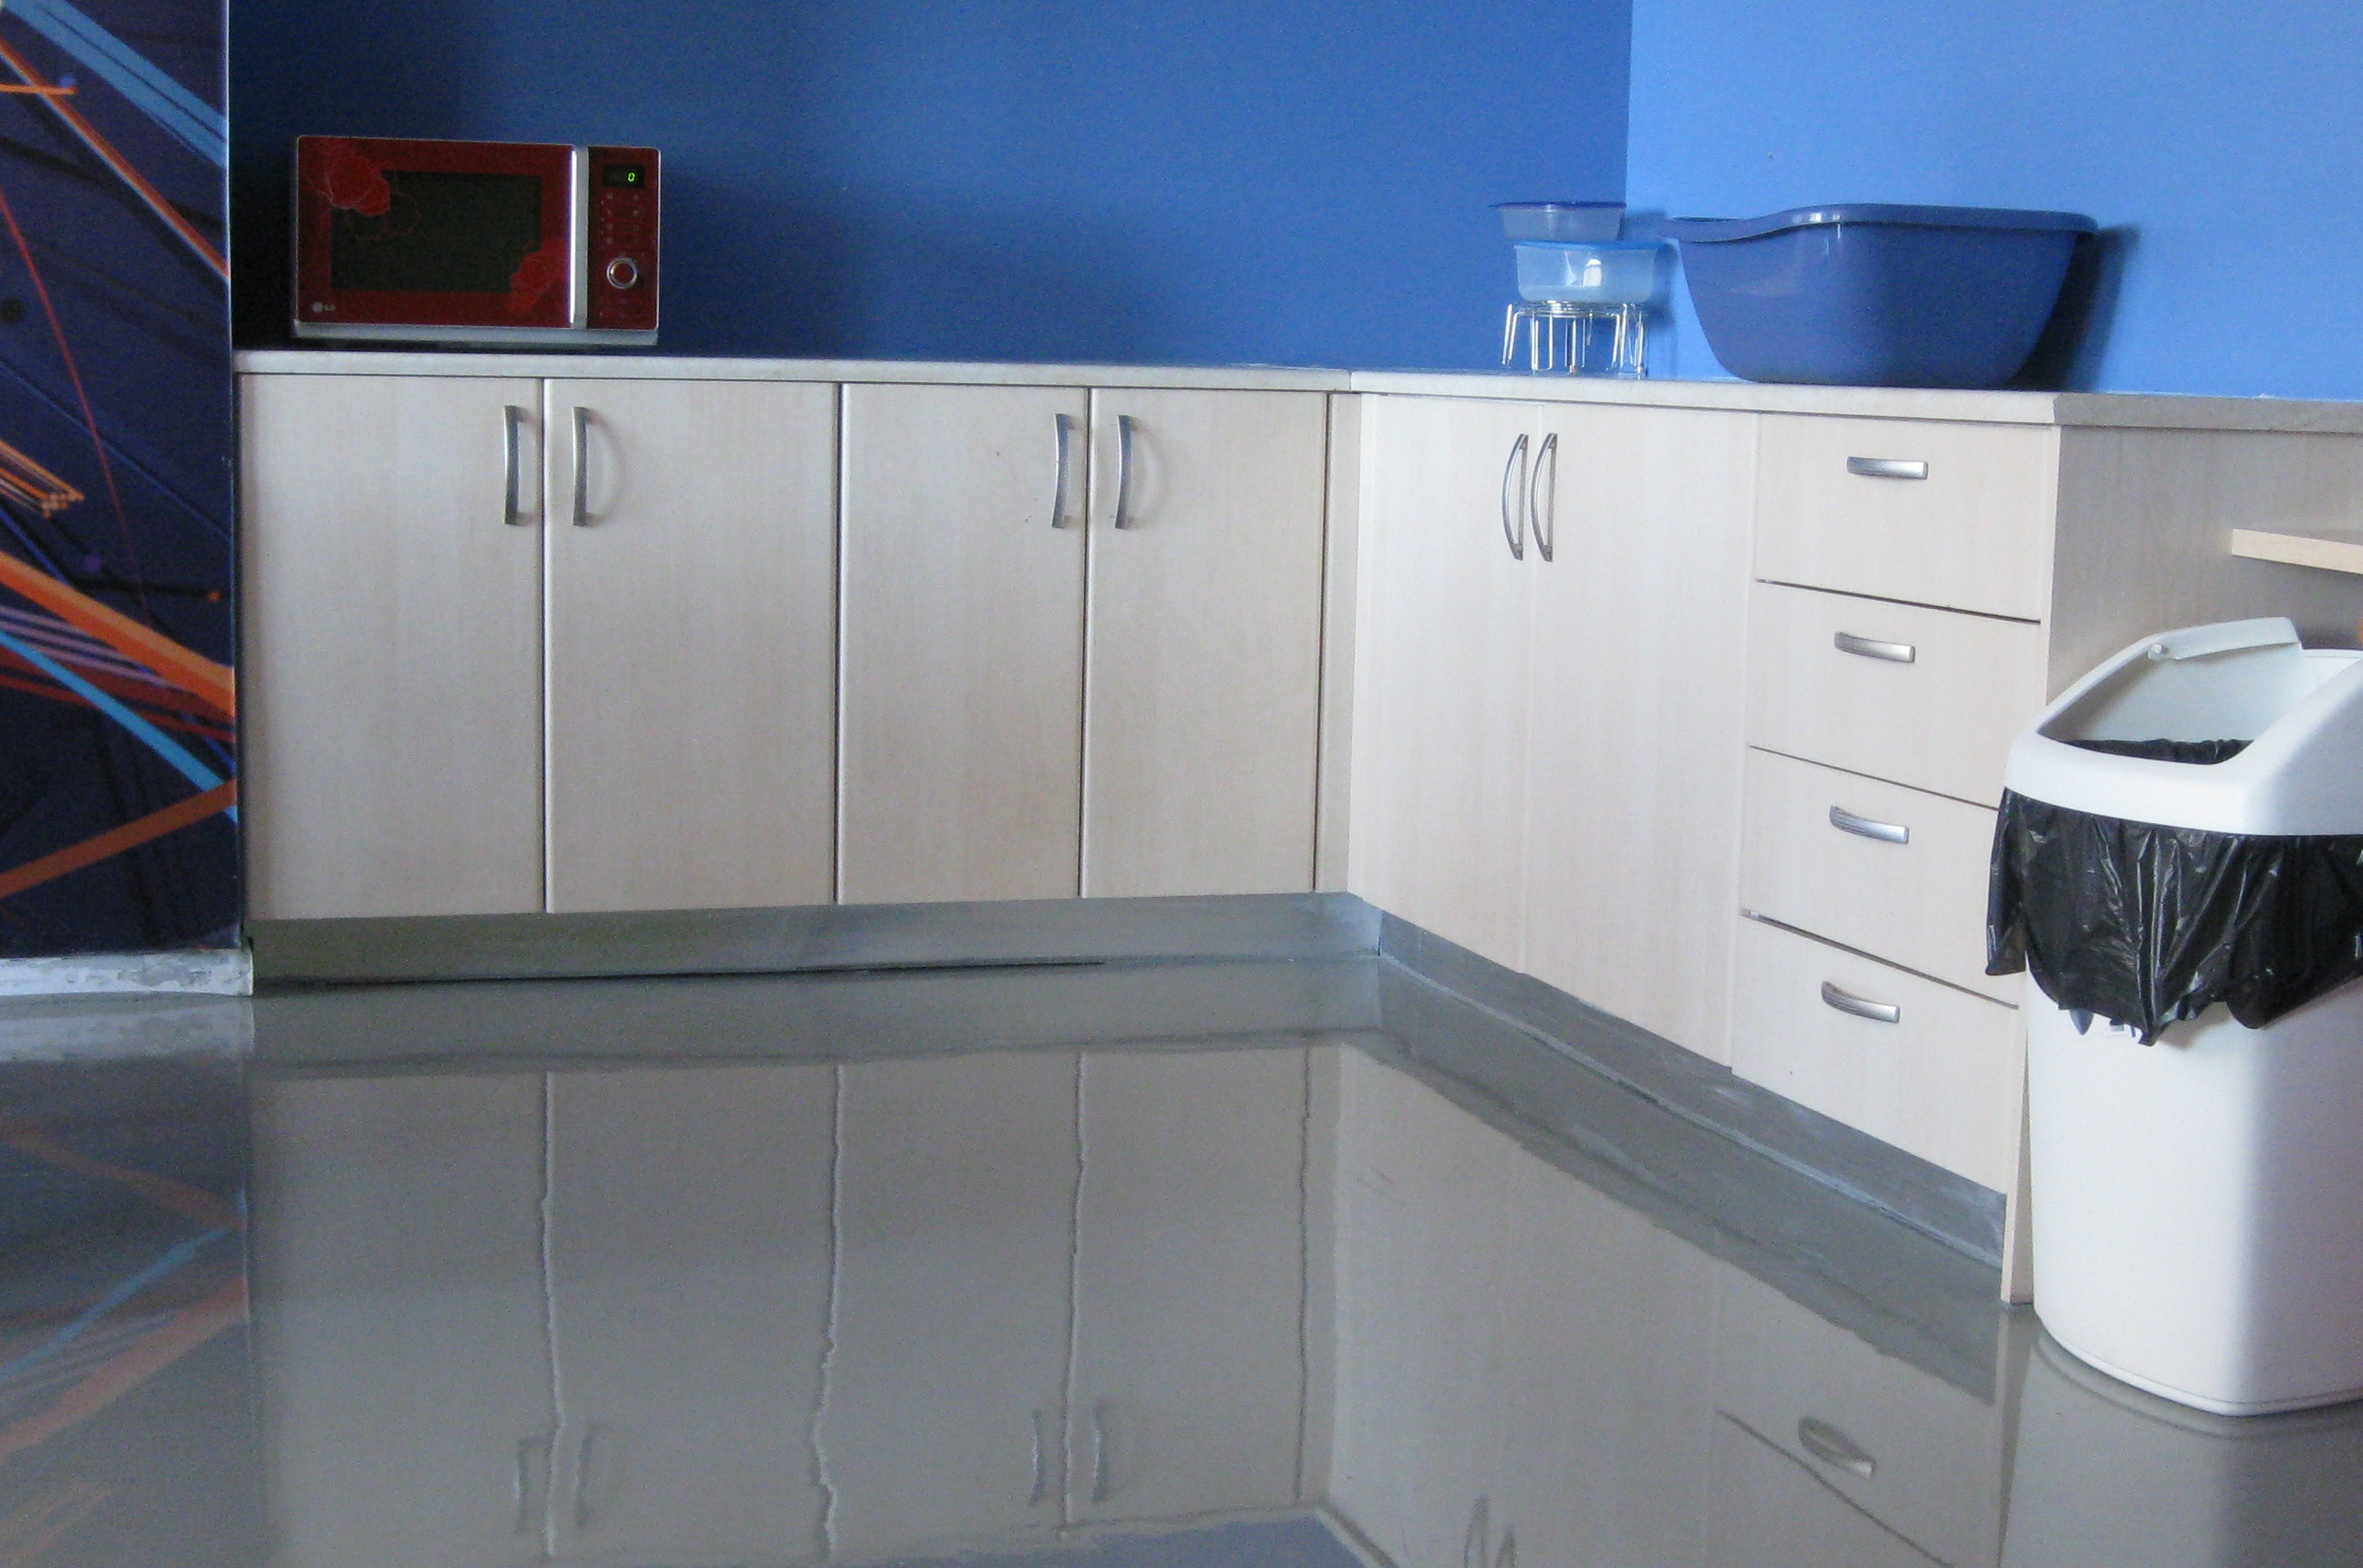 Installing Epoxy Floors In Homes Are You For Or Against Learncoatings